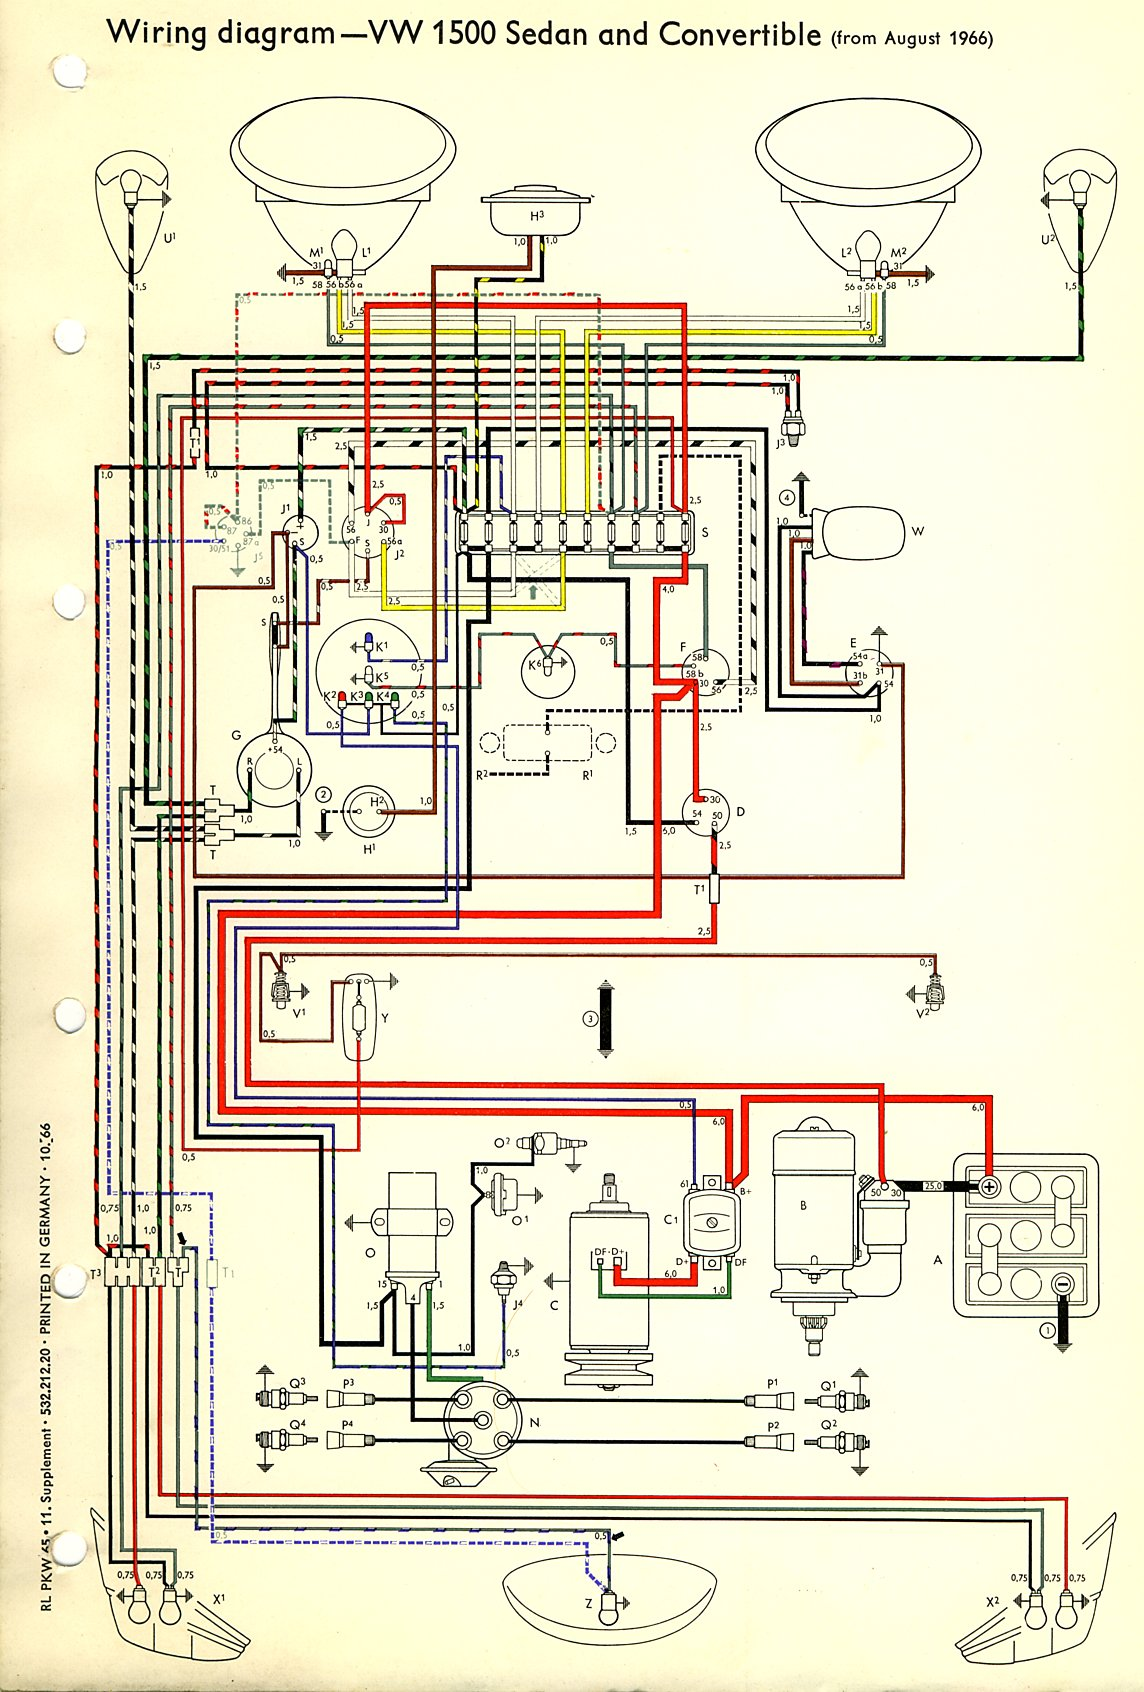 bug_67 1967 beetle wiring diagram thegoldenbug com 1973 vw wiring diagram at reclaimingppi.co